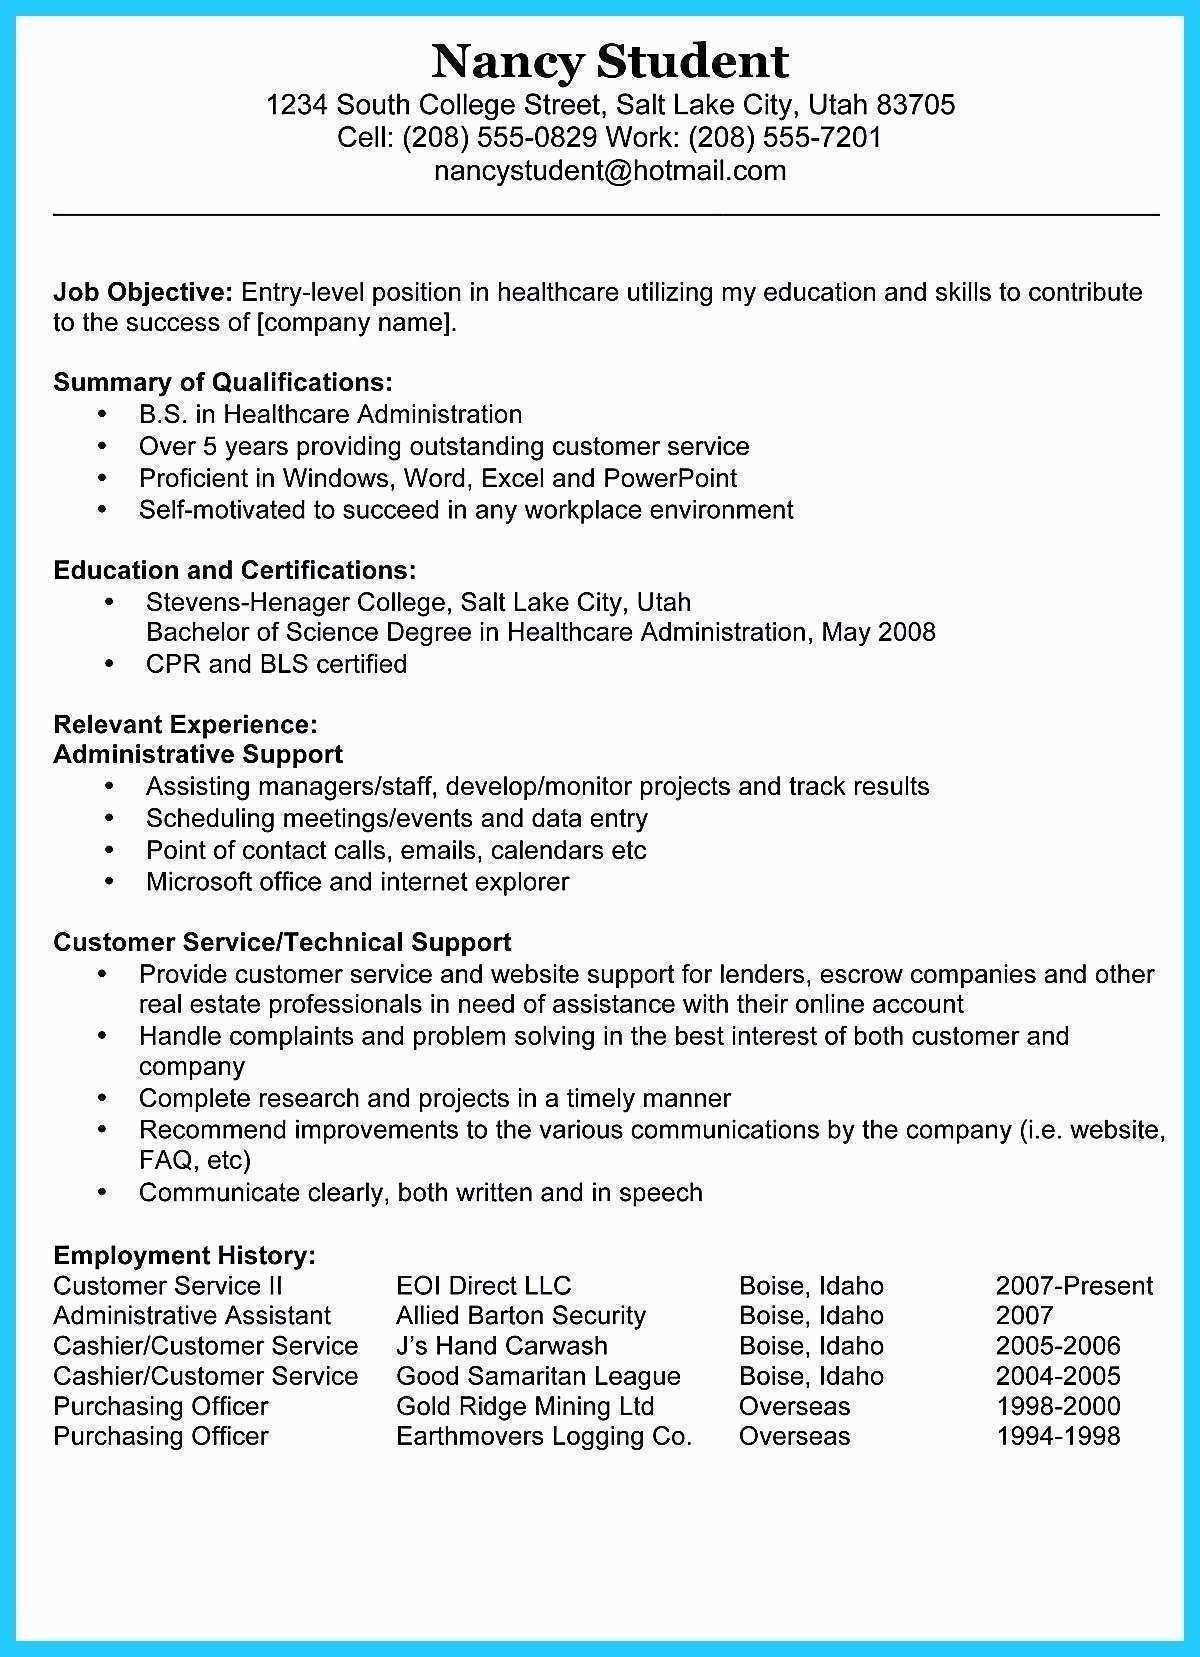 Sales Job Resume Luxury Resumes for Jobs Awesome Luxury Examples